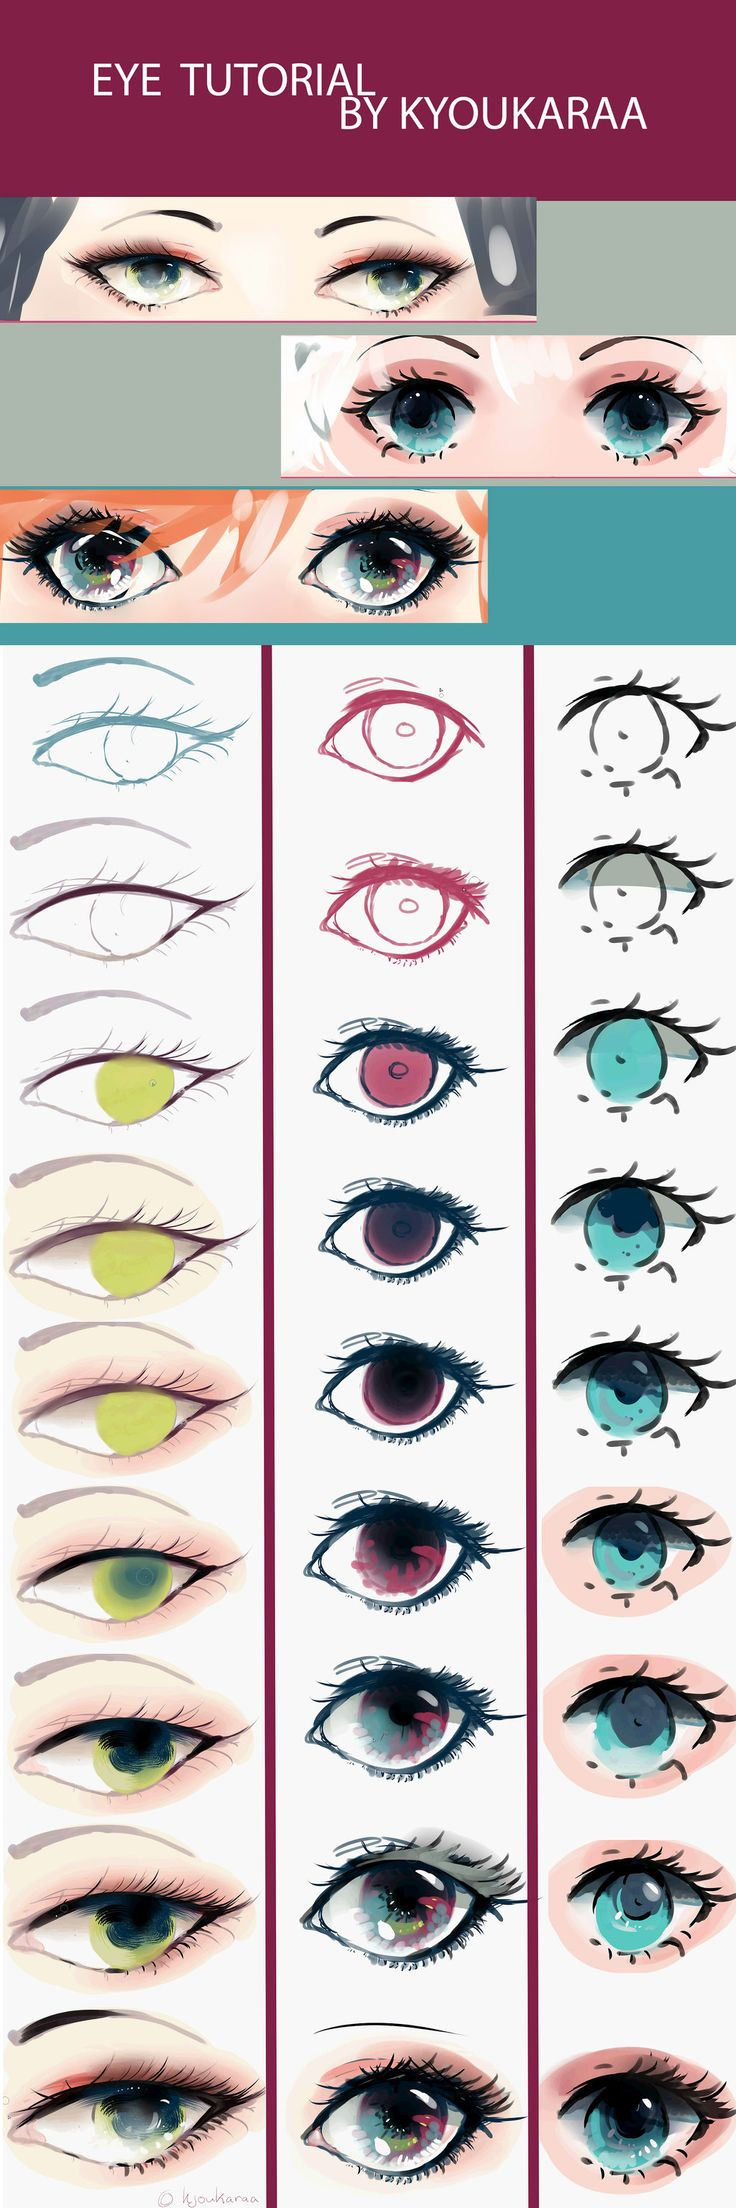 Eye Tutorial (+video) By Kyoukaraaiantart On @deviantart